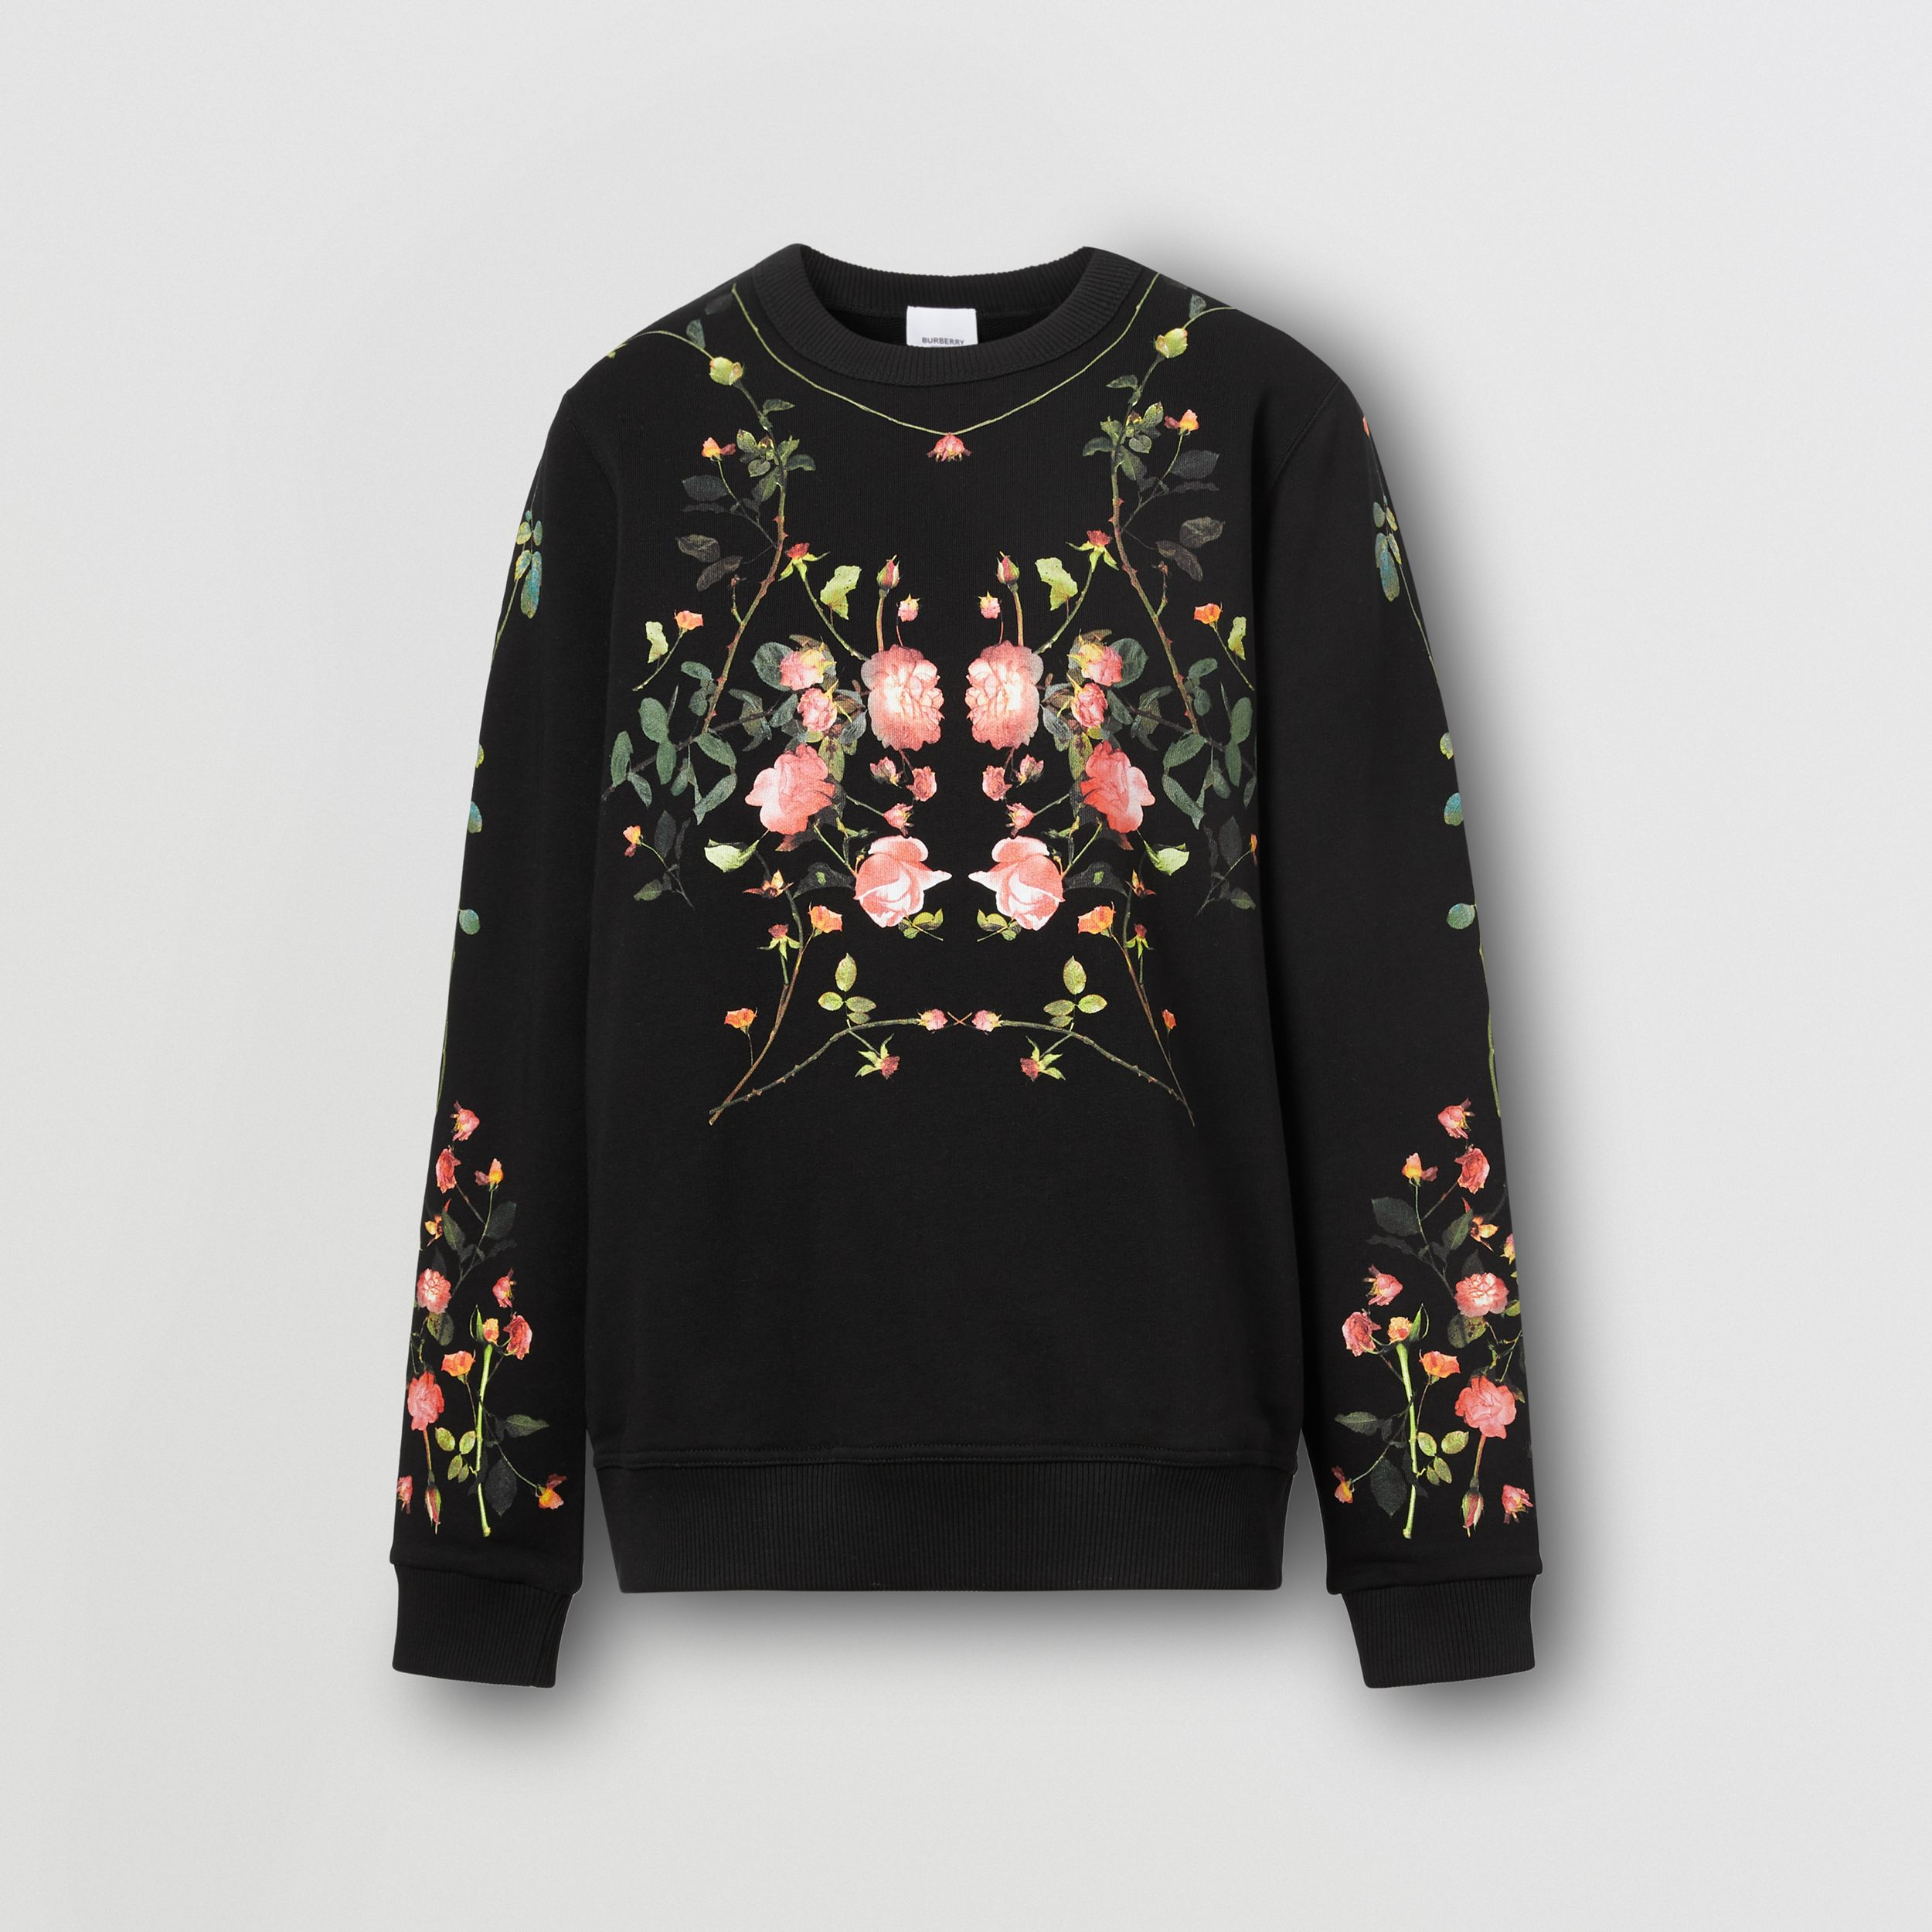 Rose Print Cotton Oversized Sweatshirt in Black - Women | Burberry Canada - 4